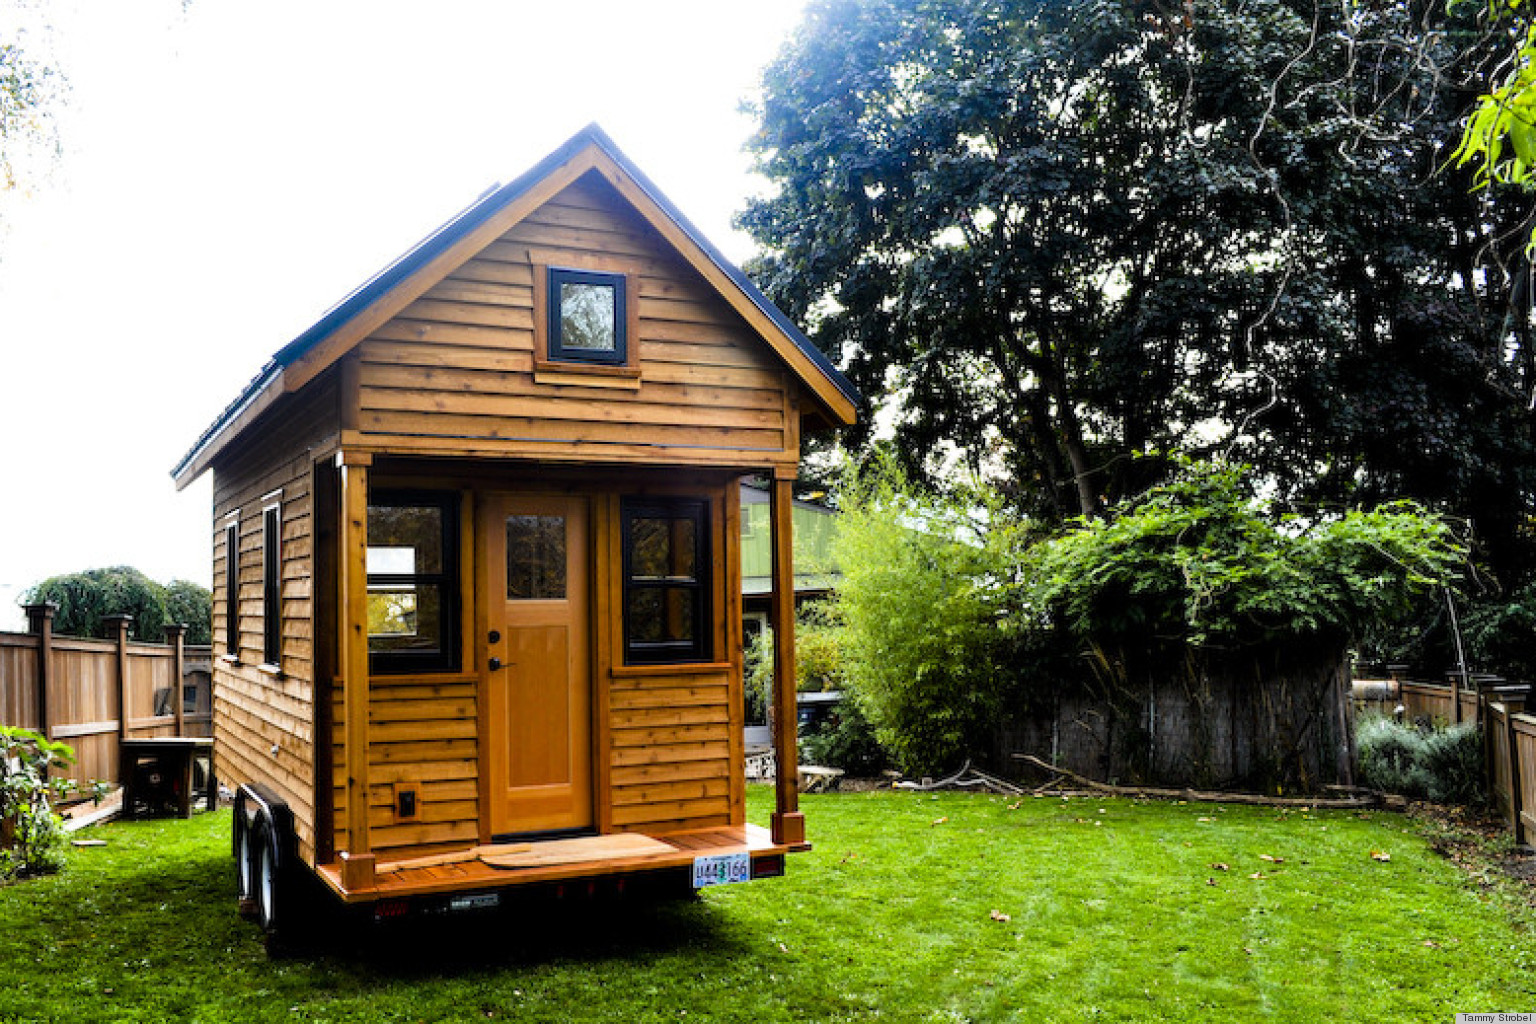 House tour author and blogger tammy strobel shares her Tiny little houses on wheels